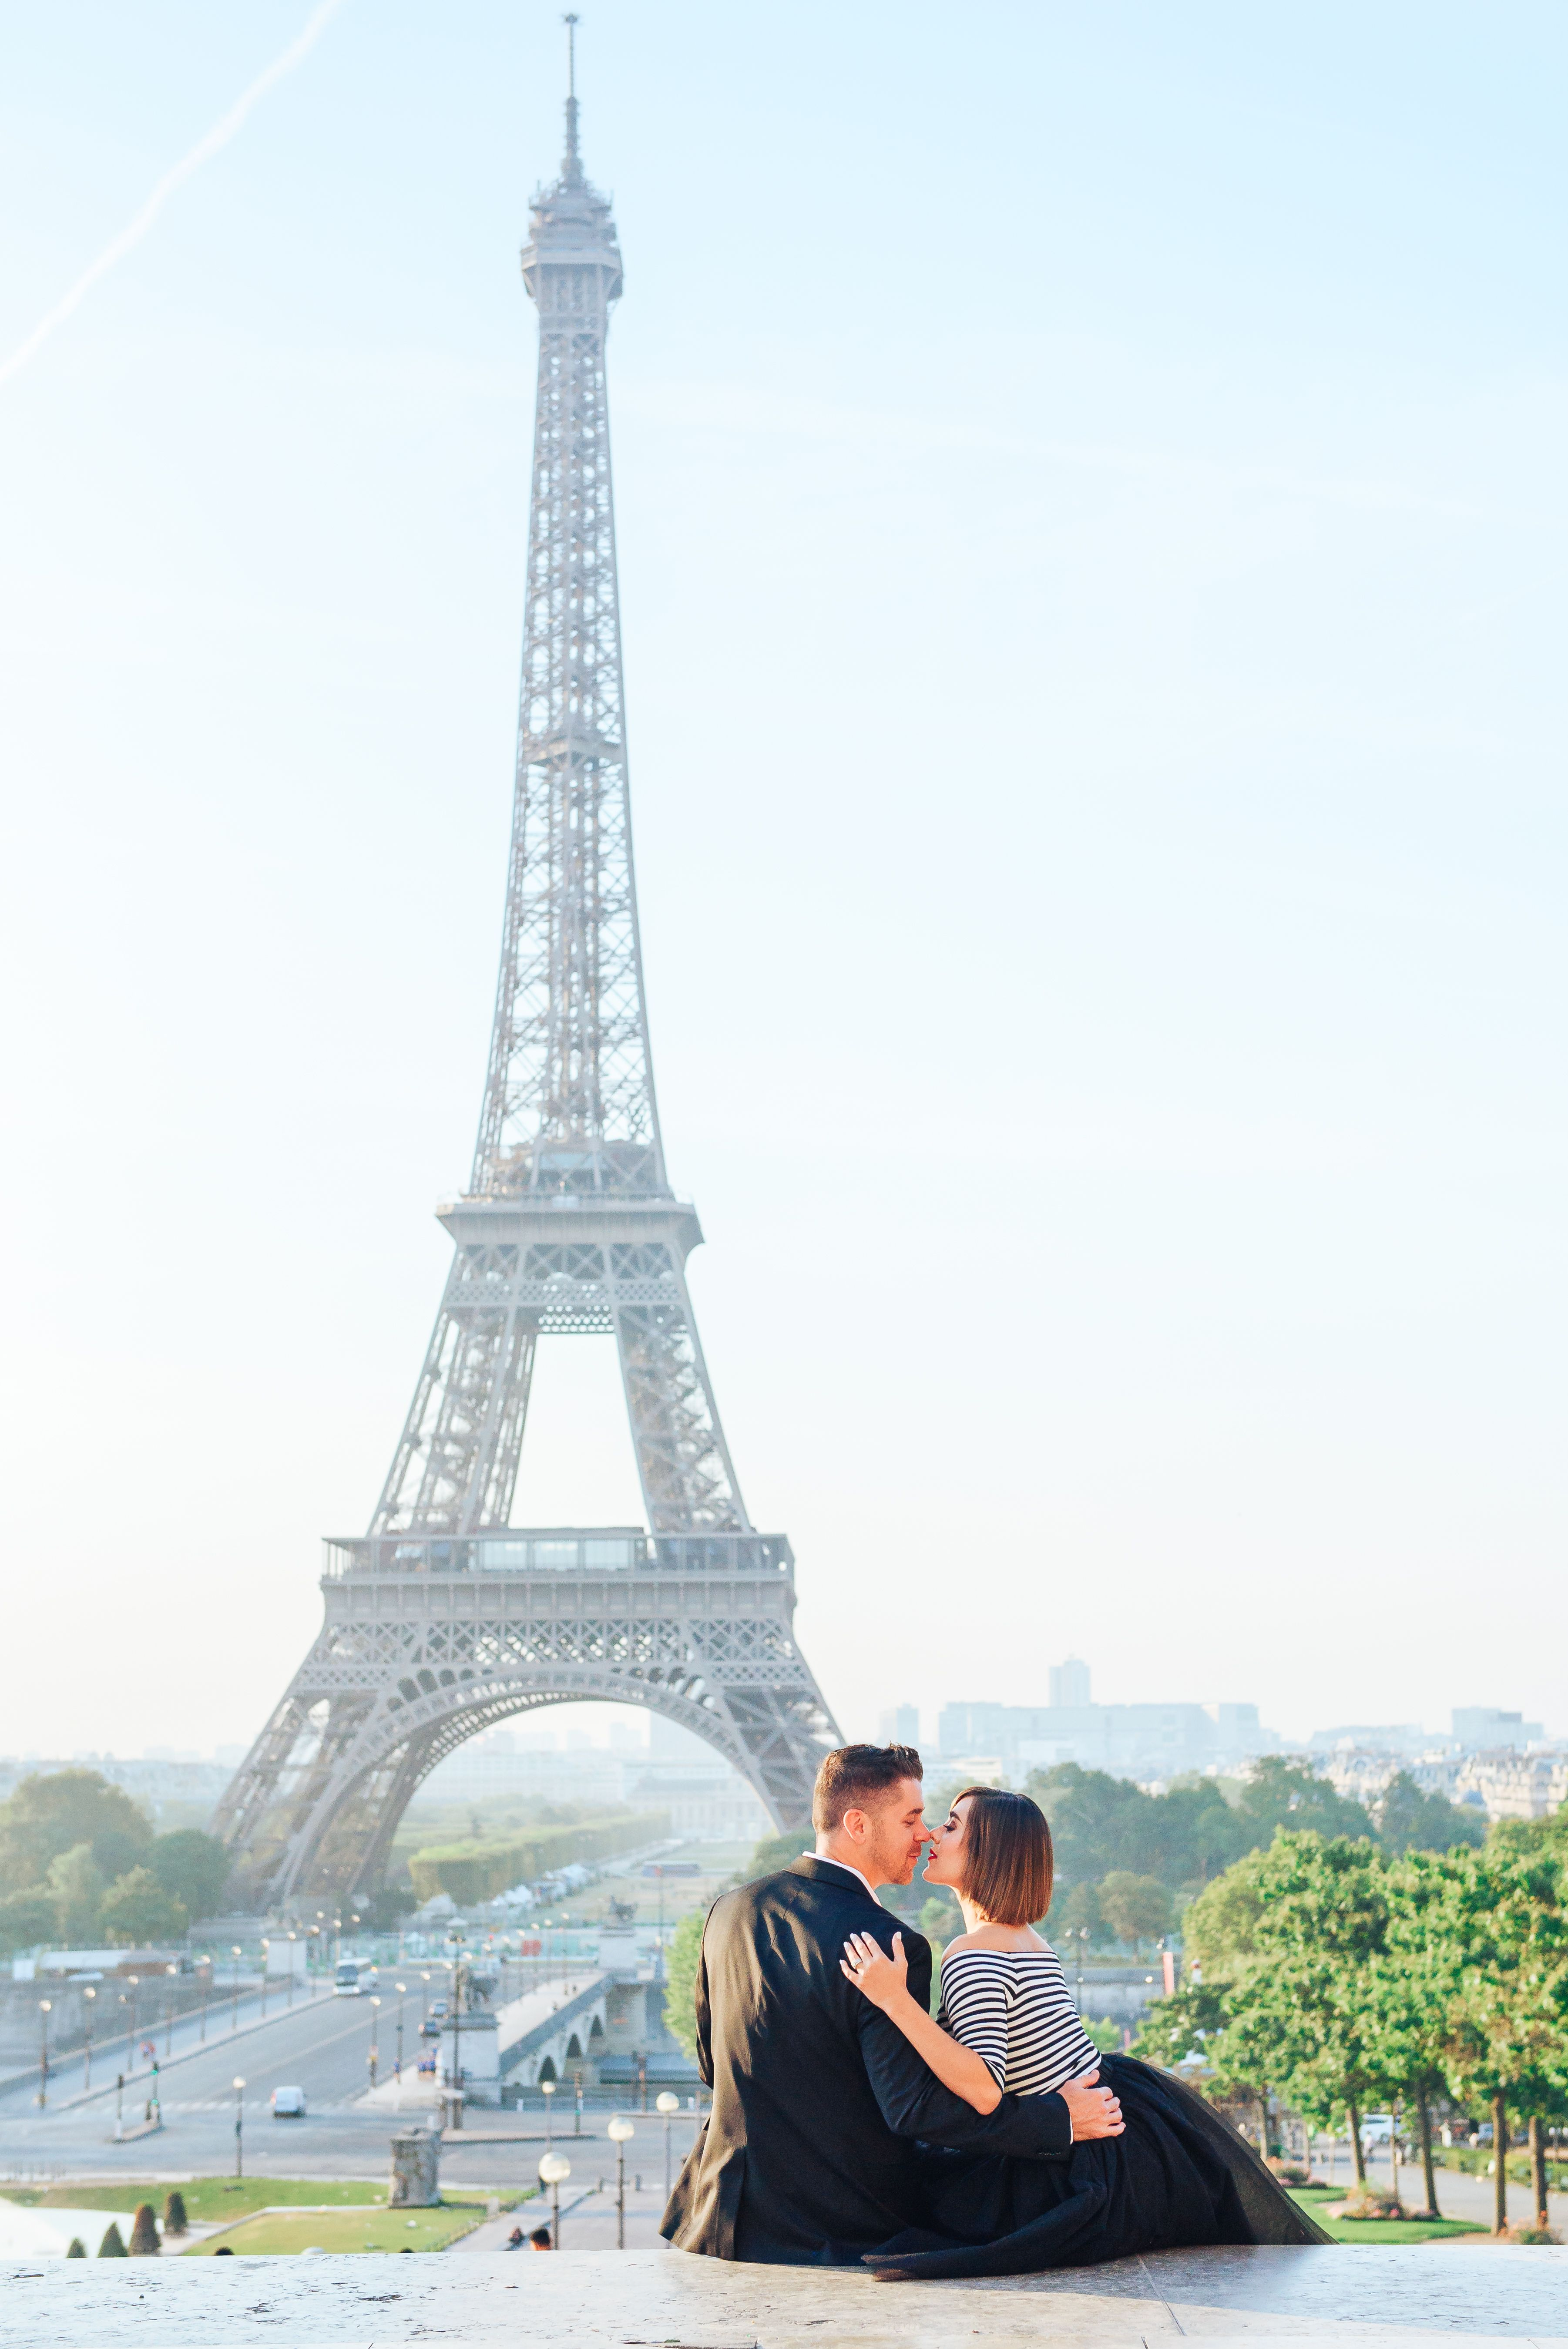 Photo Of Couple In Paris At Trocadero Square Stairs Engagement Photo Session In Paris With Eiffel Tower Pho Paris Engagement Photos Paris Couple Paris Photos